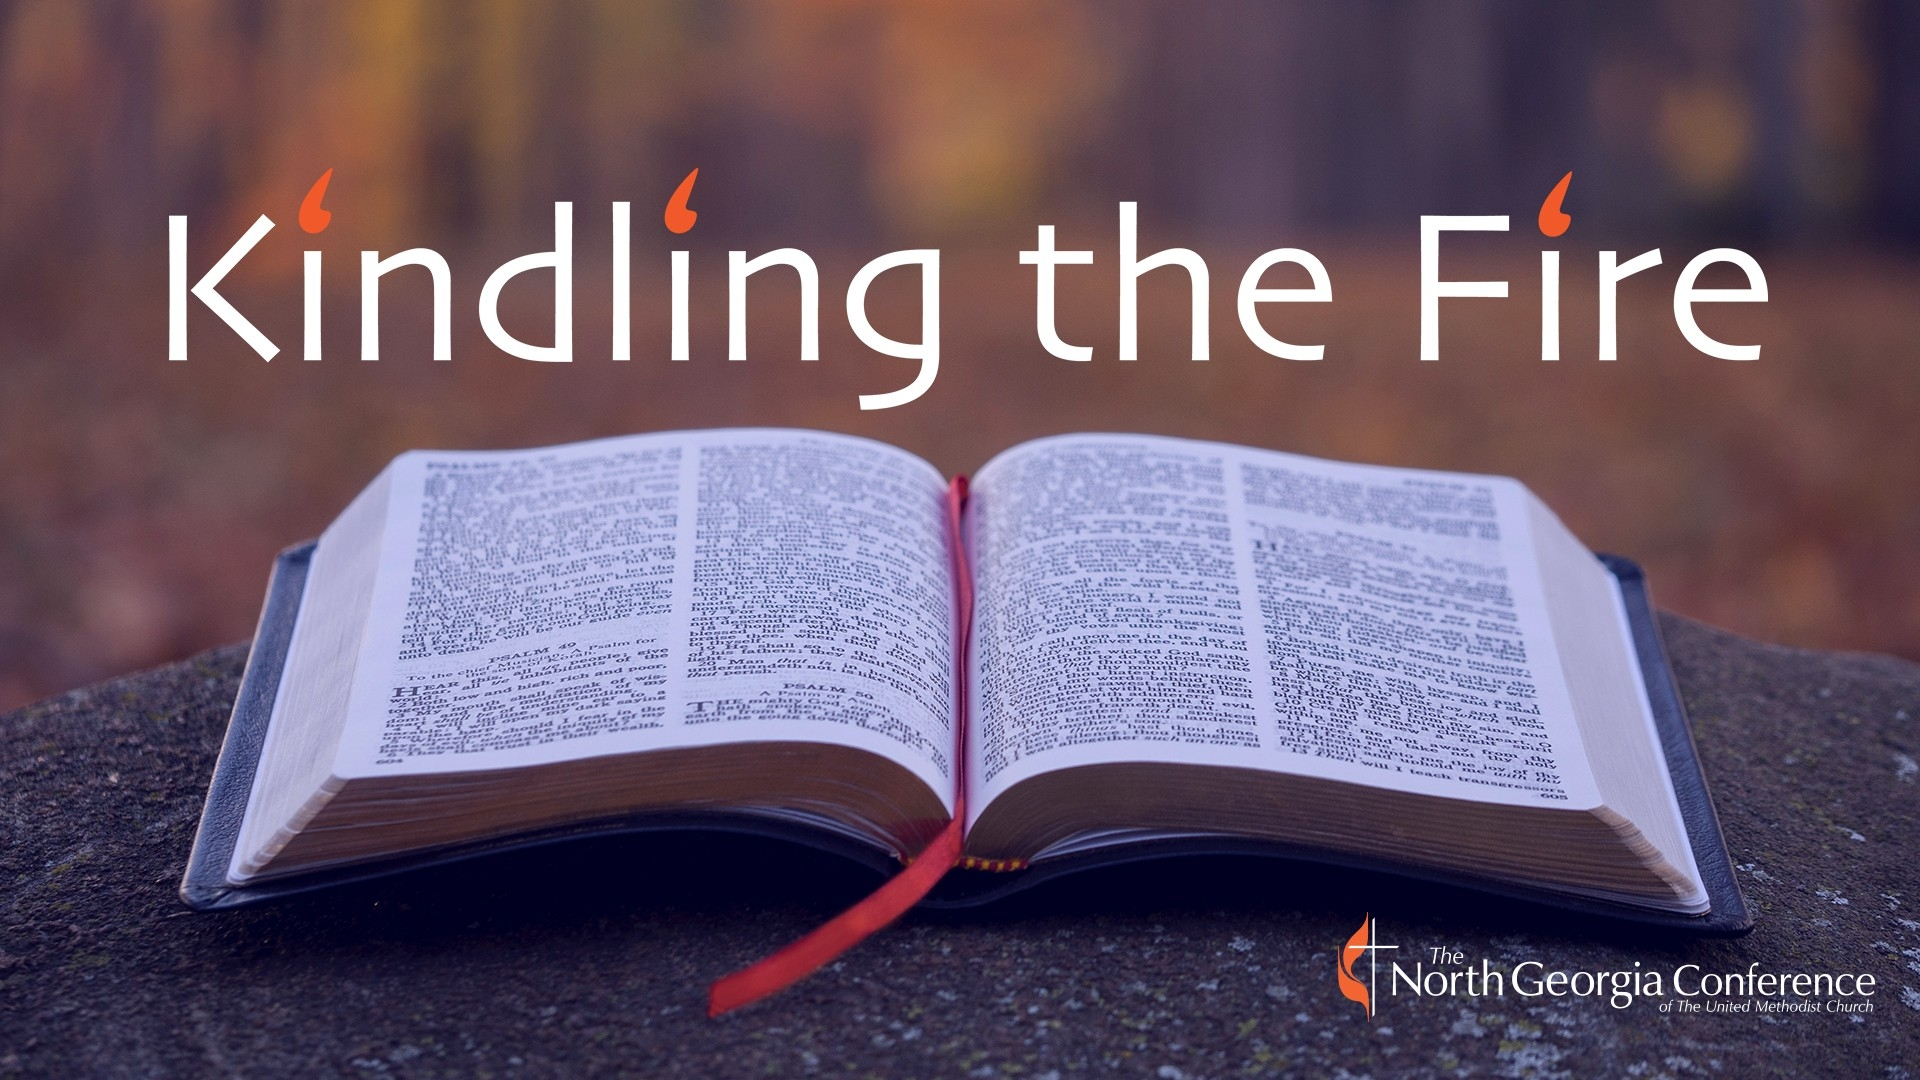 Ngumc: Kindling The Fire: Lectionary Reading Retreat For Clergy  Lectionary Reading Of Methodist For 2020